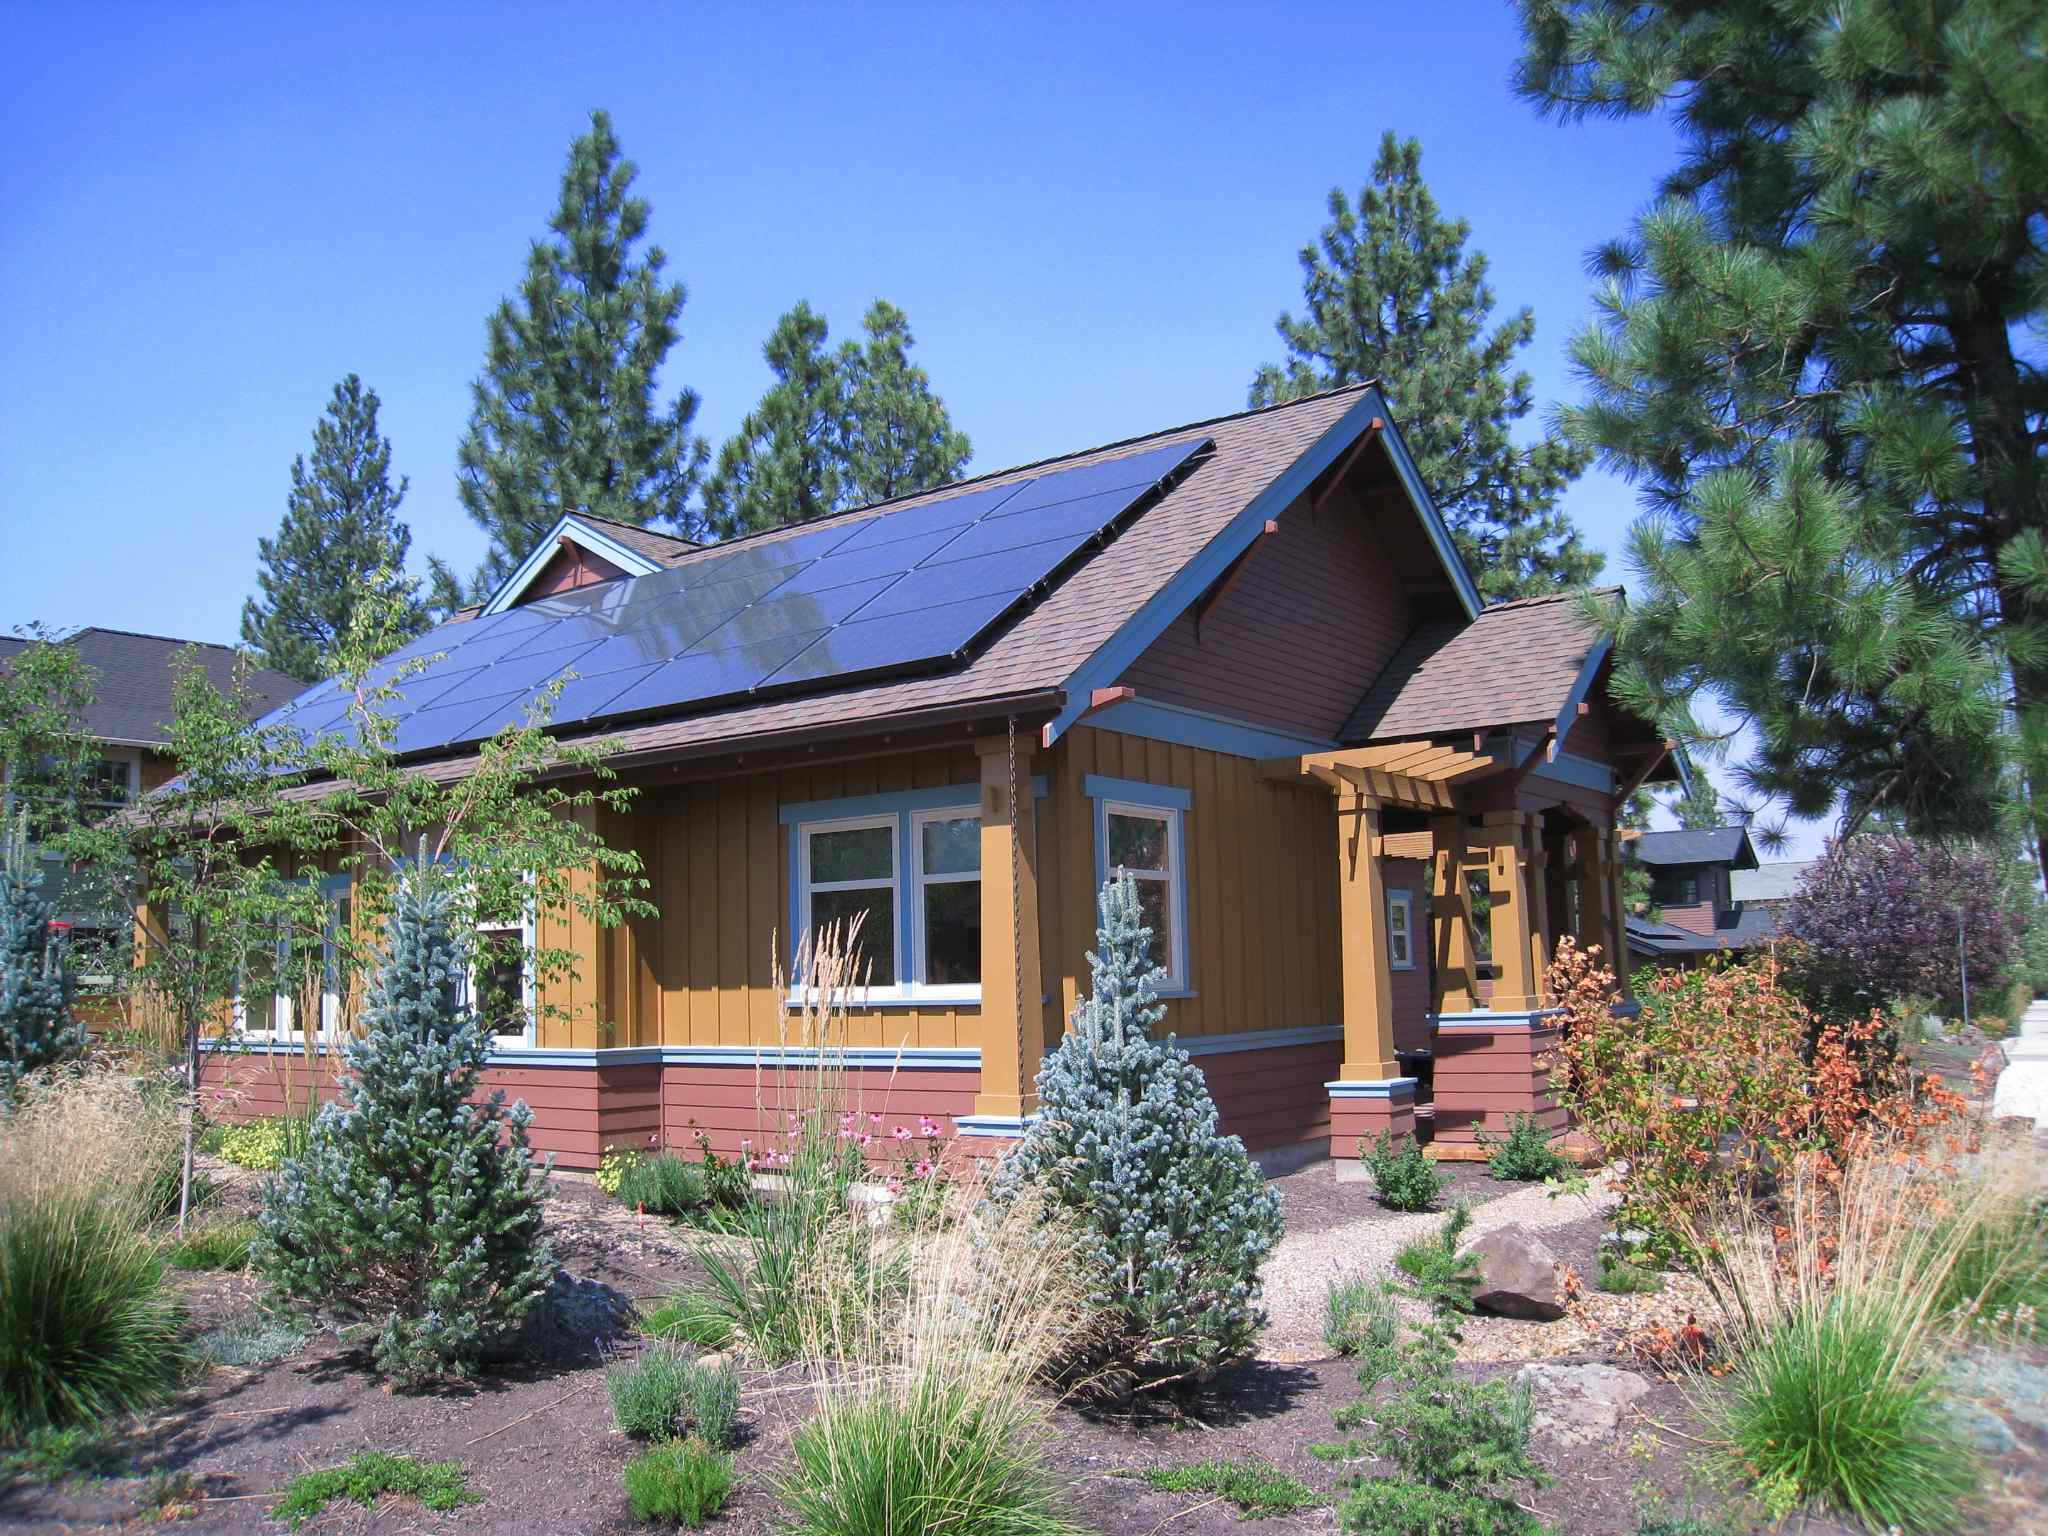 Zero energy home design zero homes green homes for Zero energy homes